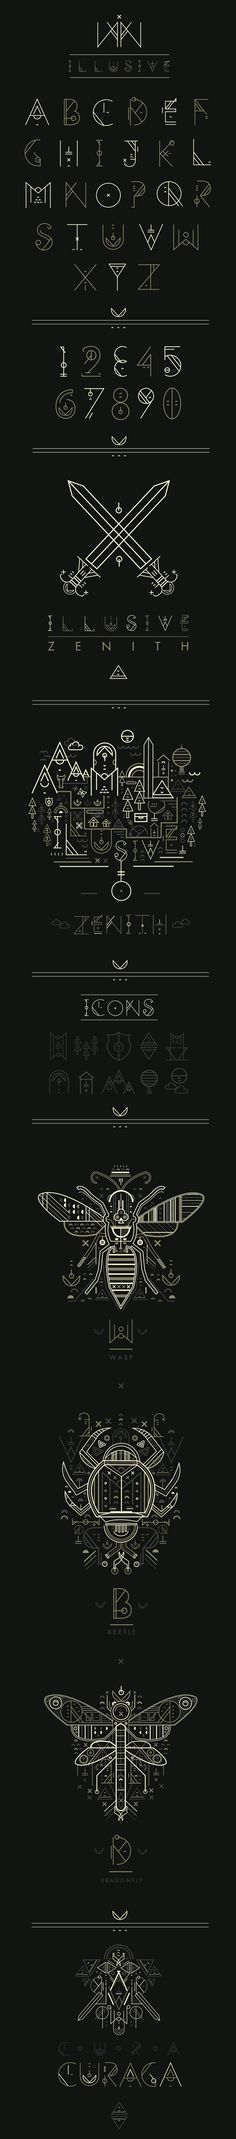 Illusive by Petros Afshar, via Behance  Hipster Graphics #alphabet #typography